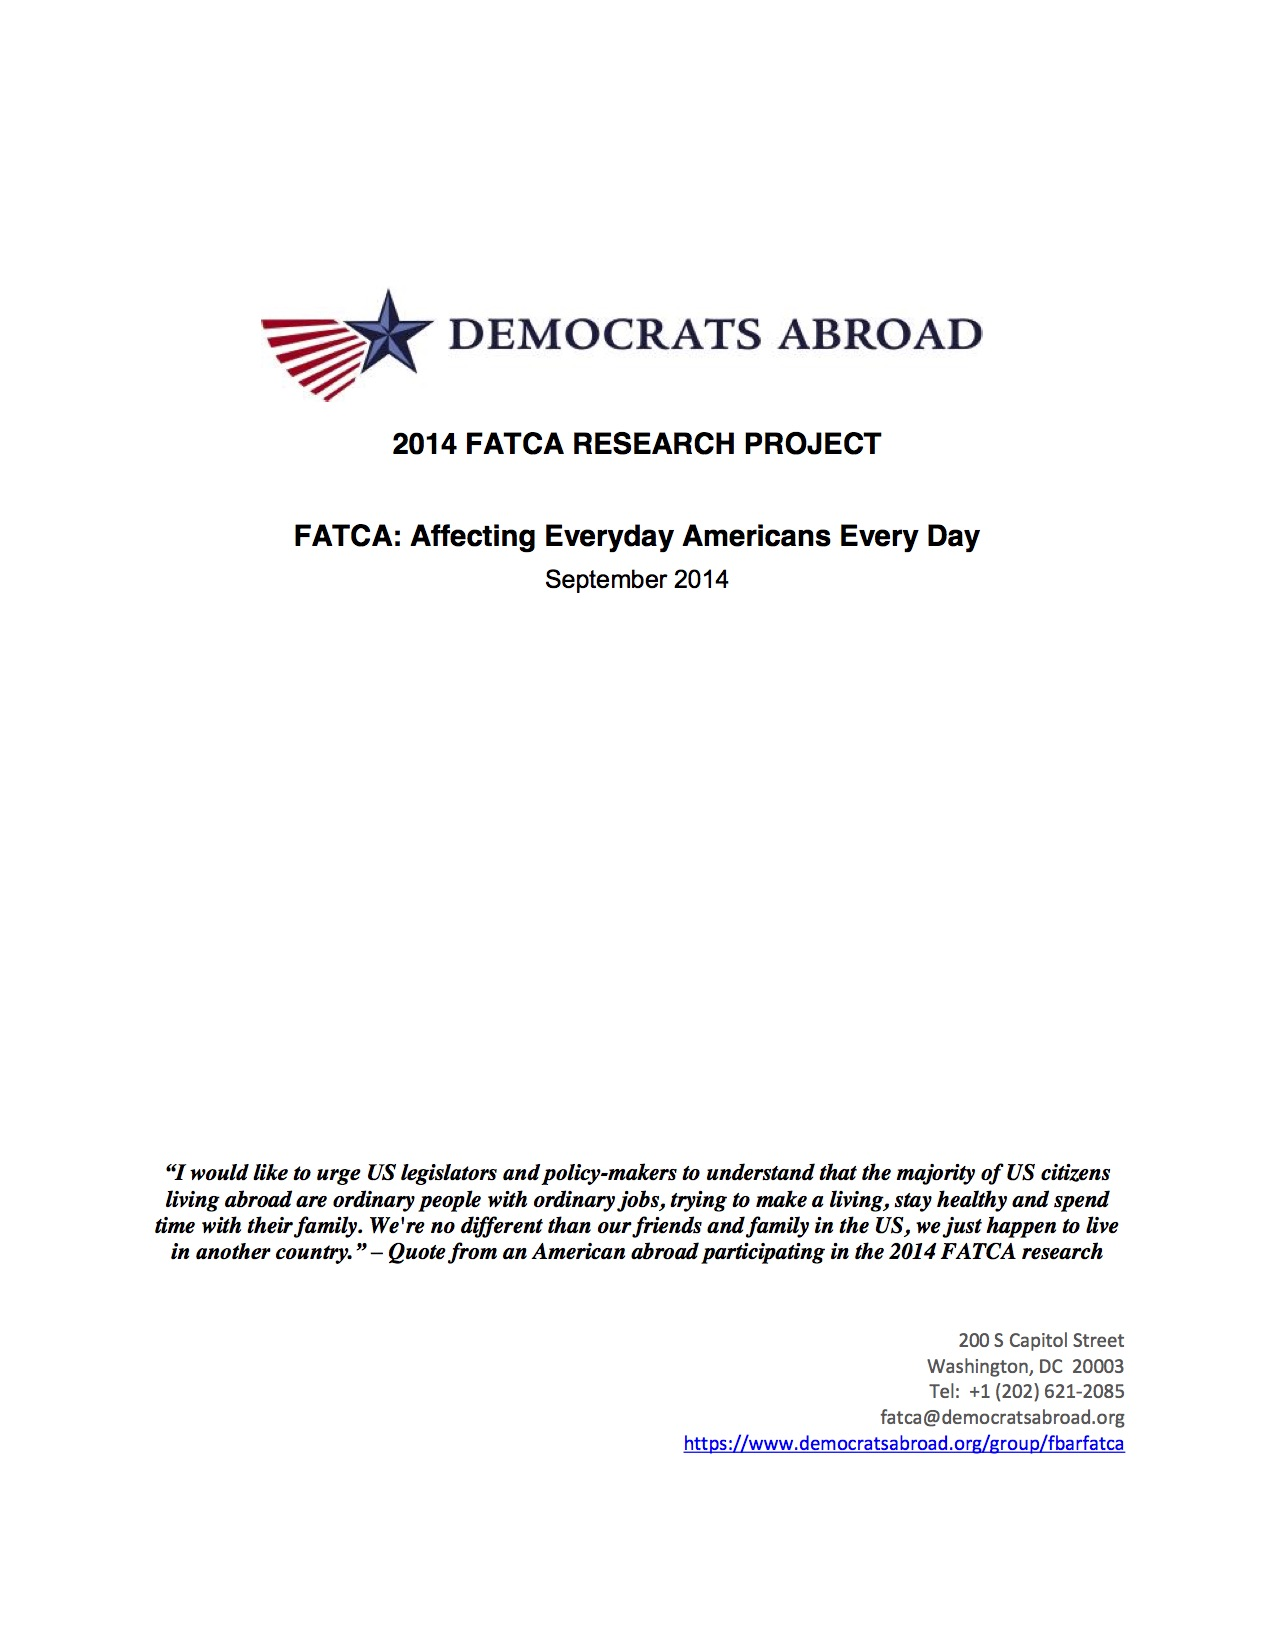 Democrats_Abroad_2014_FATCA_Research_Report.jpg